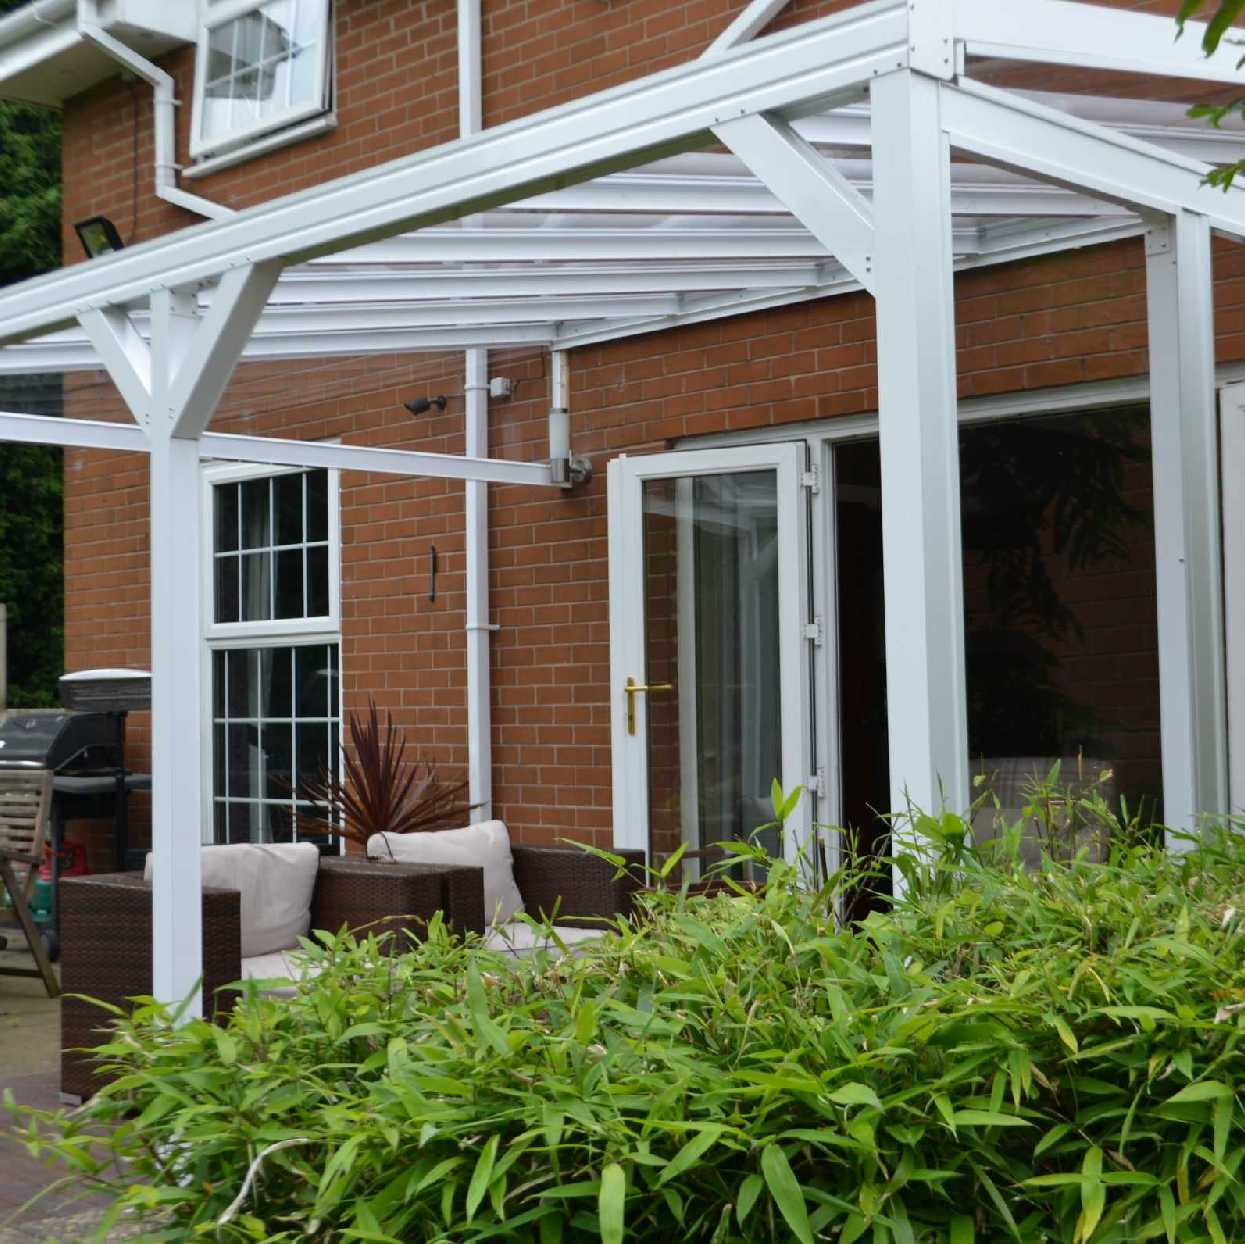 Omega Smart White Lean-To Canopy with 6mm Glass Clear Plate Polycarbonate Glazing - 2.1m (W) x 2.5m (P), (2) Supporting Posts from Omega Build